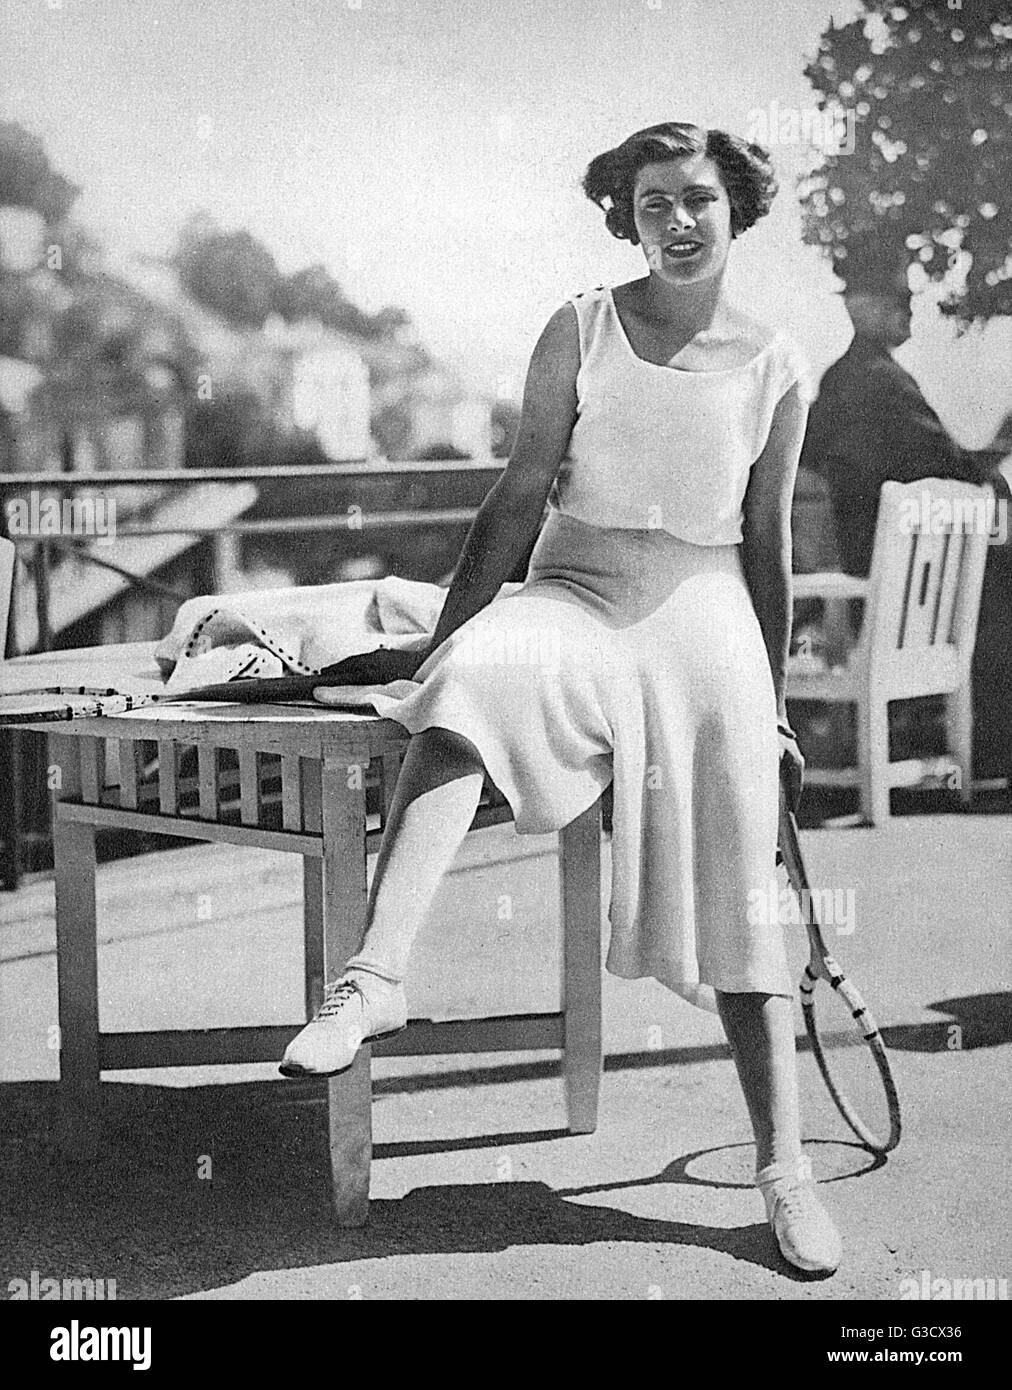 Lili d'Alvarez, Spanish tennis player, pictured modelling her famous culottes, or 'divided skirt' which - Stock Image